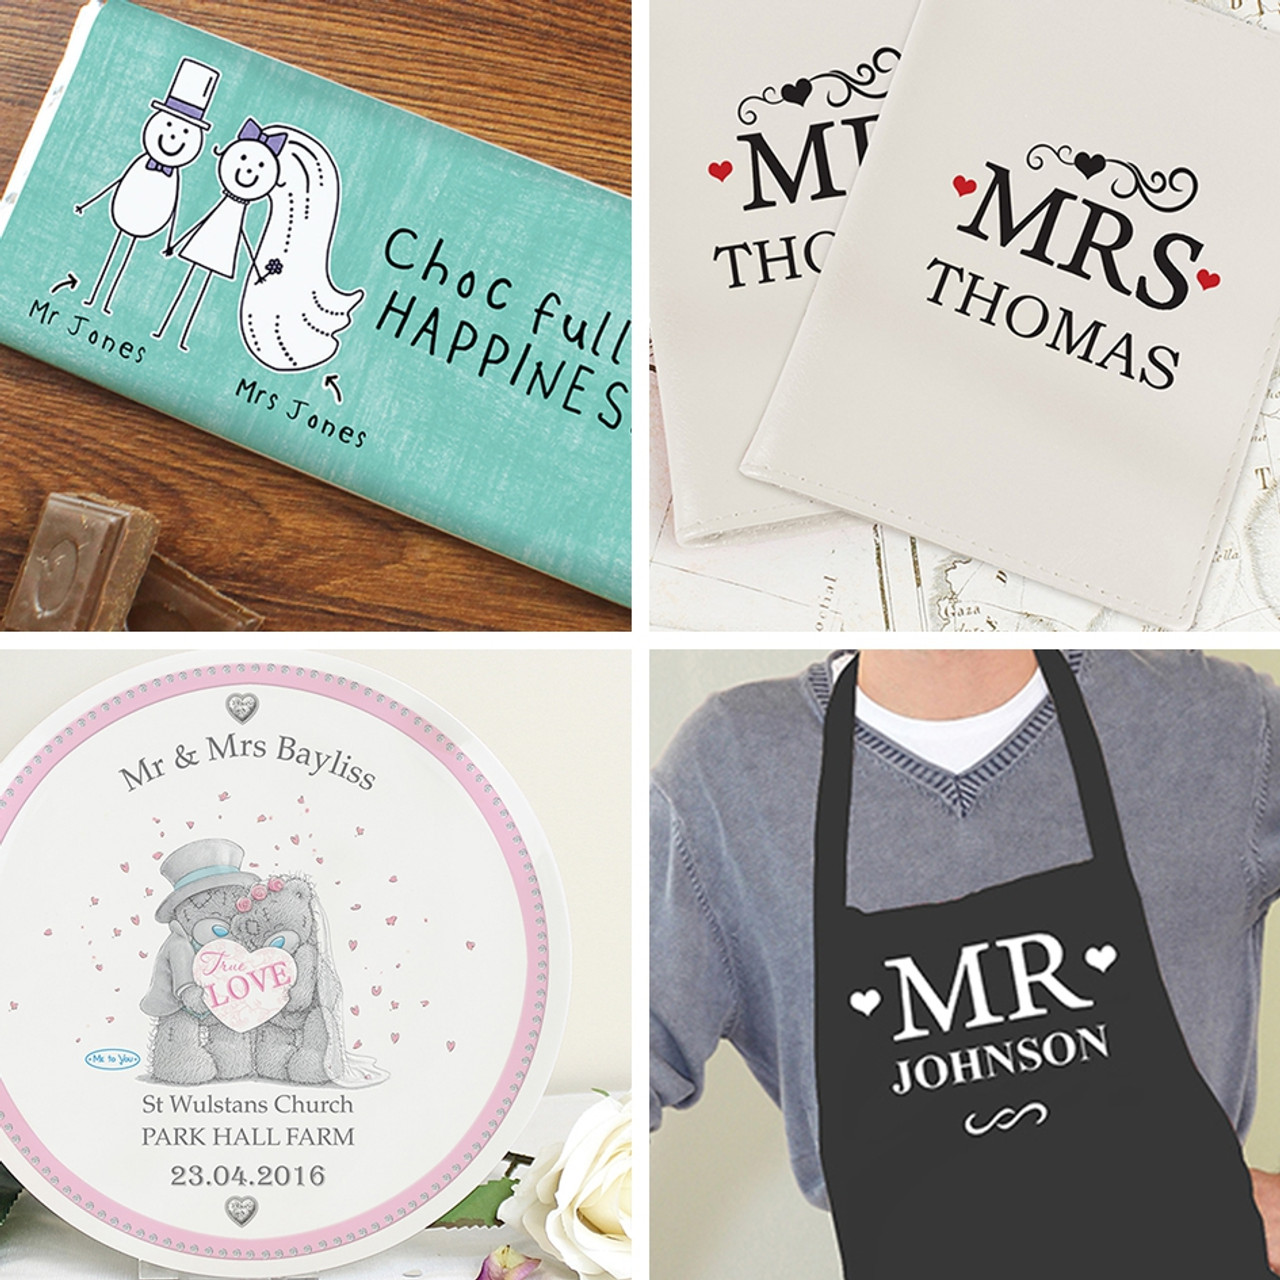 Shop All Bride & Groom Gifts